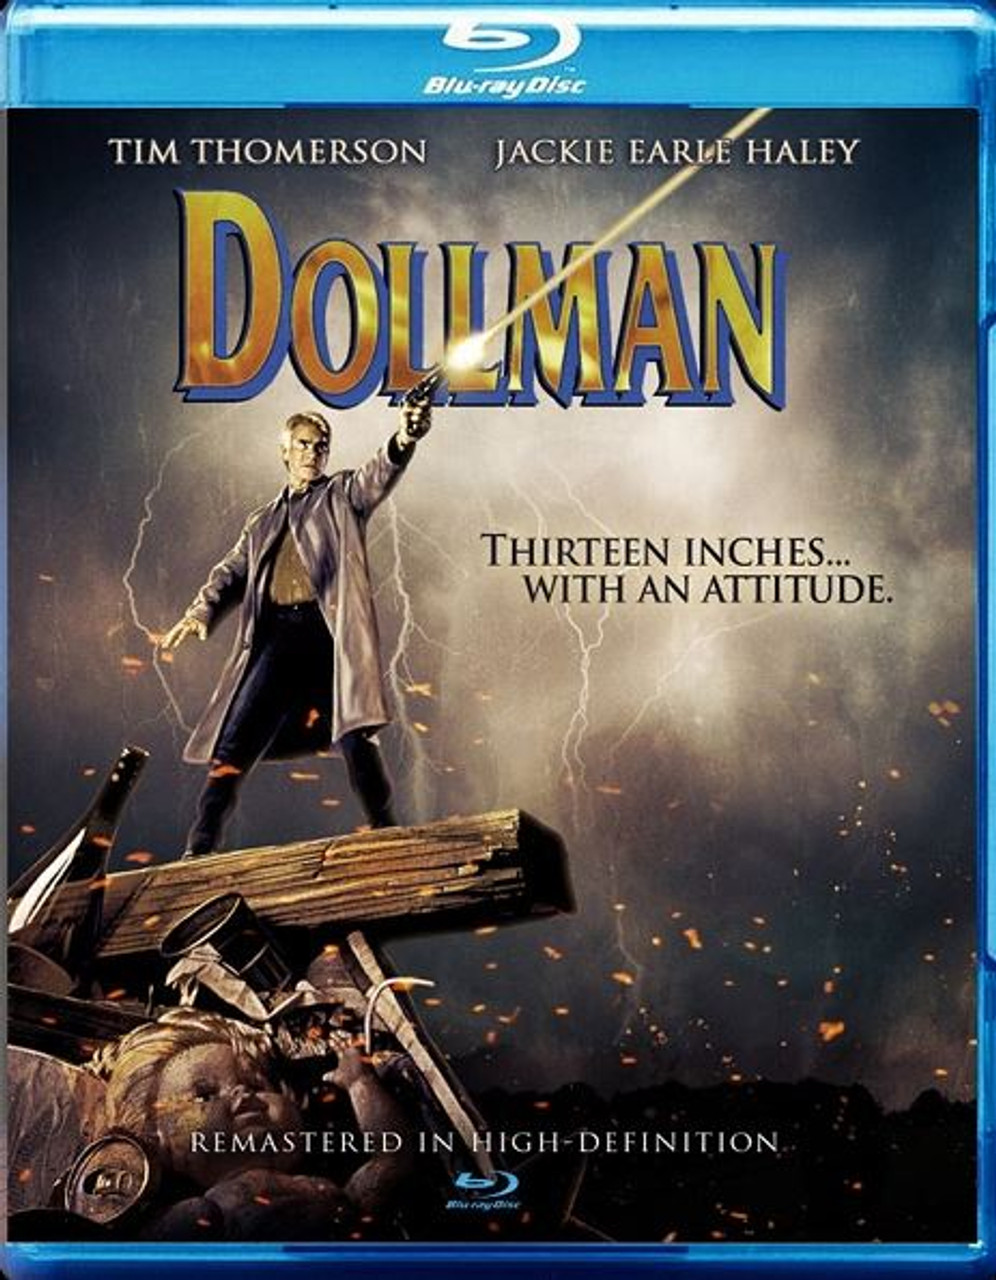 Full Moon - Dollman Blu-Ray RATED R18+